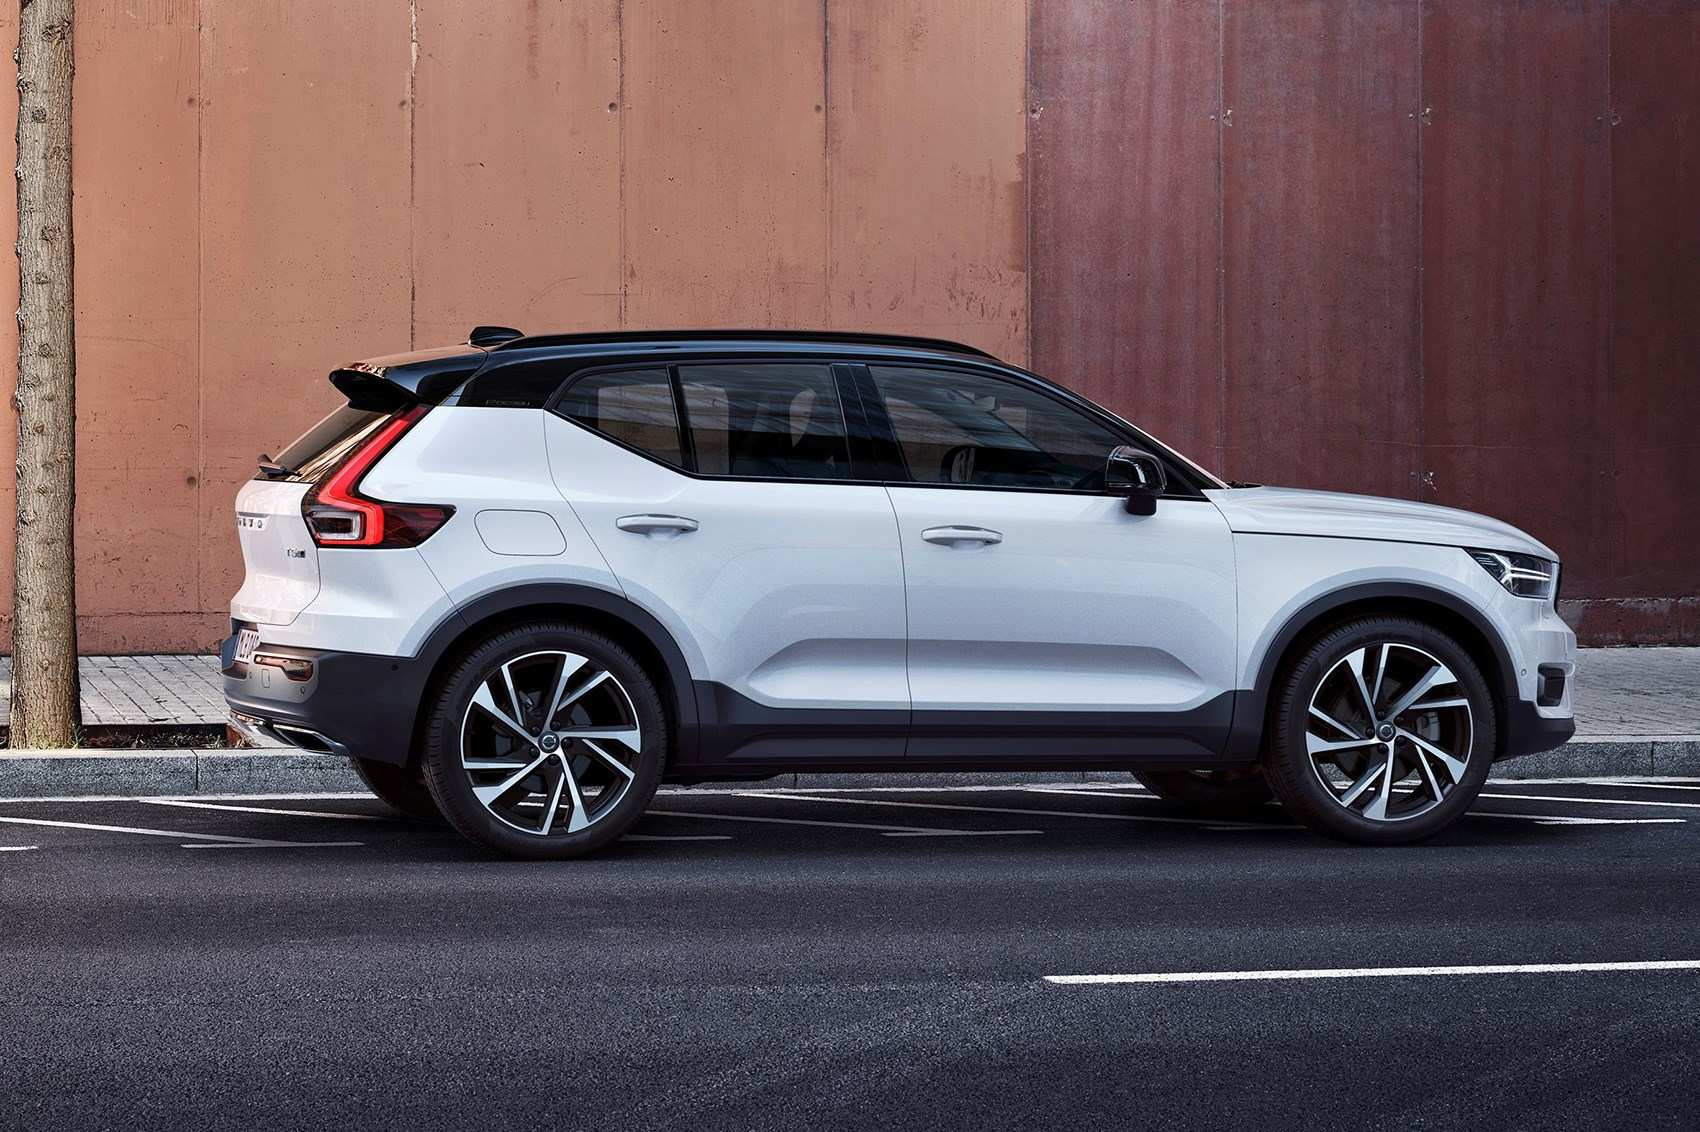 38 Concept of Volvo Xc40 2020 Release Date Spy Shoot with Volvo Xc40 2020 Release Date